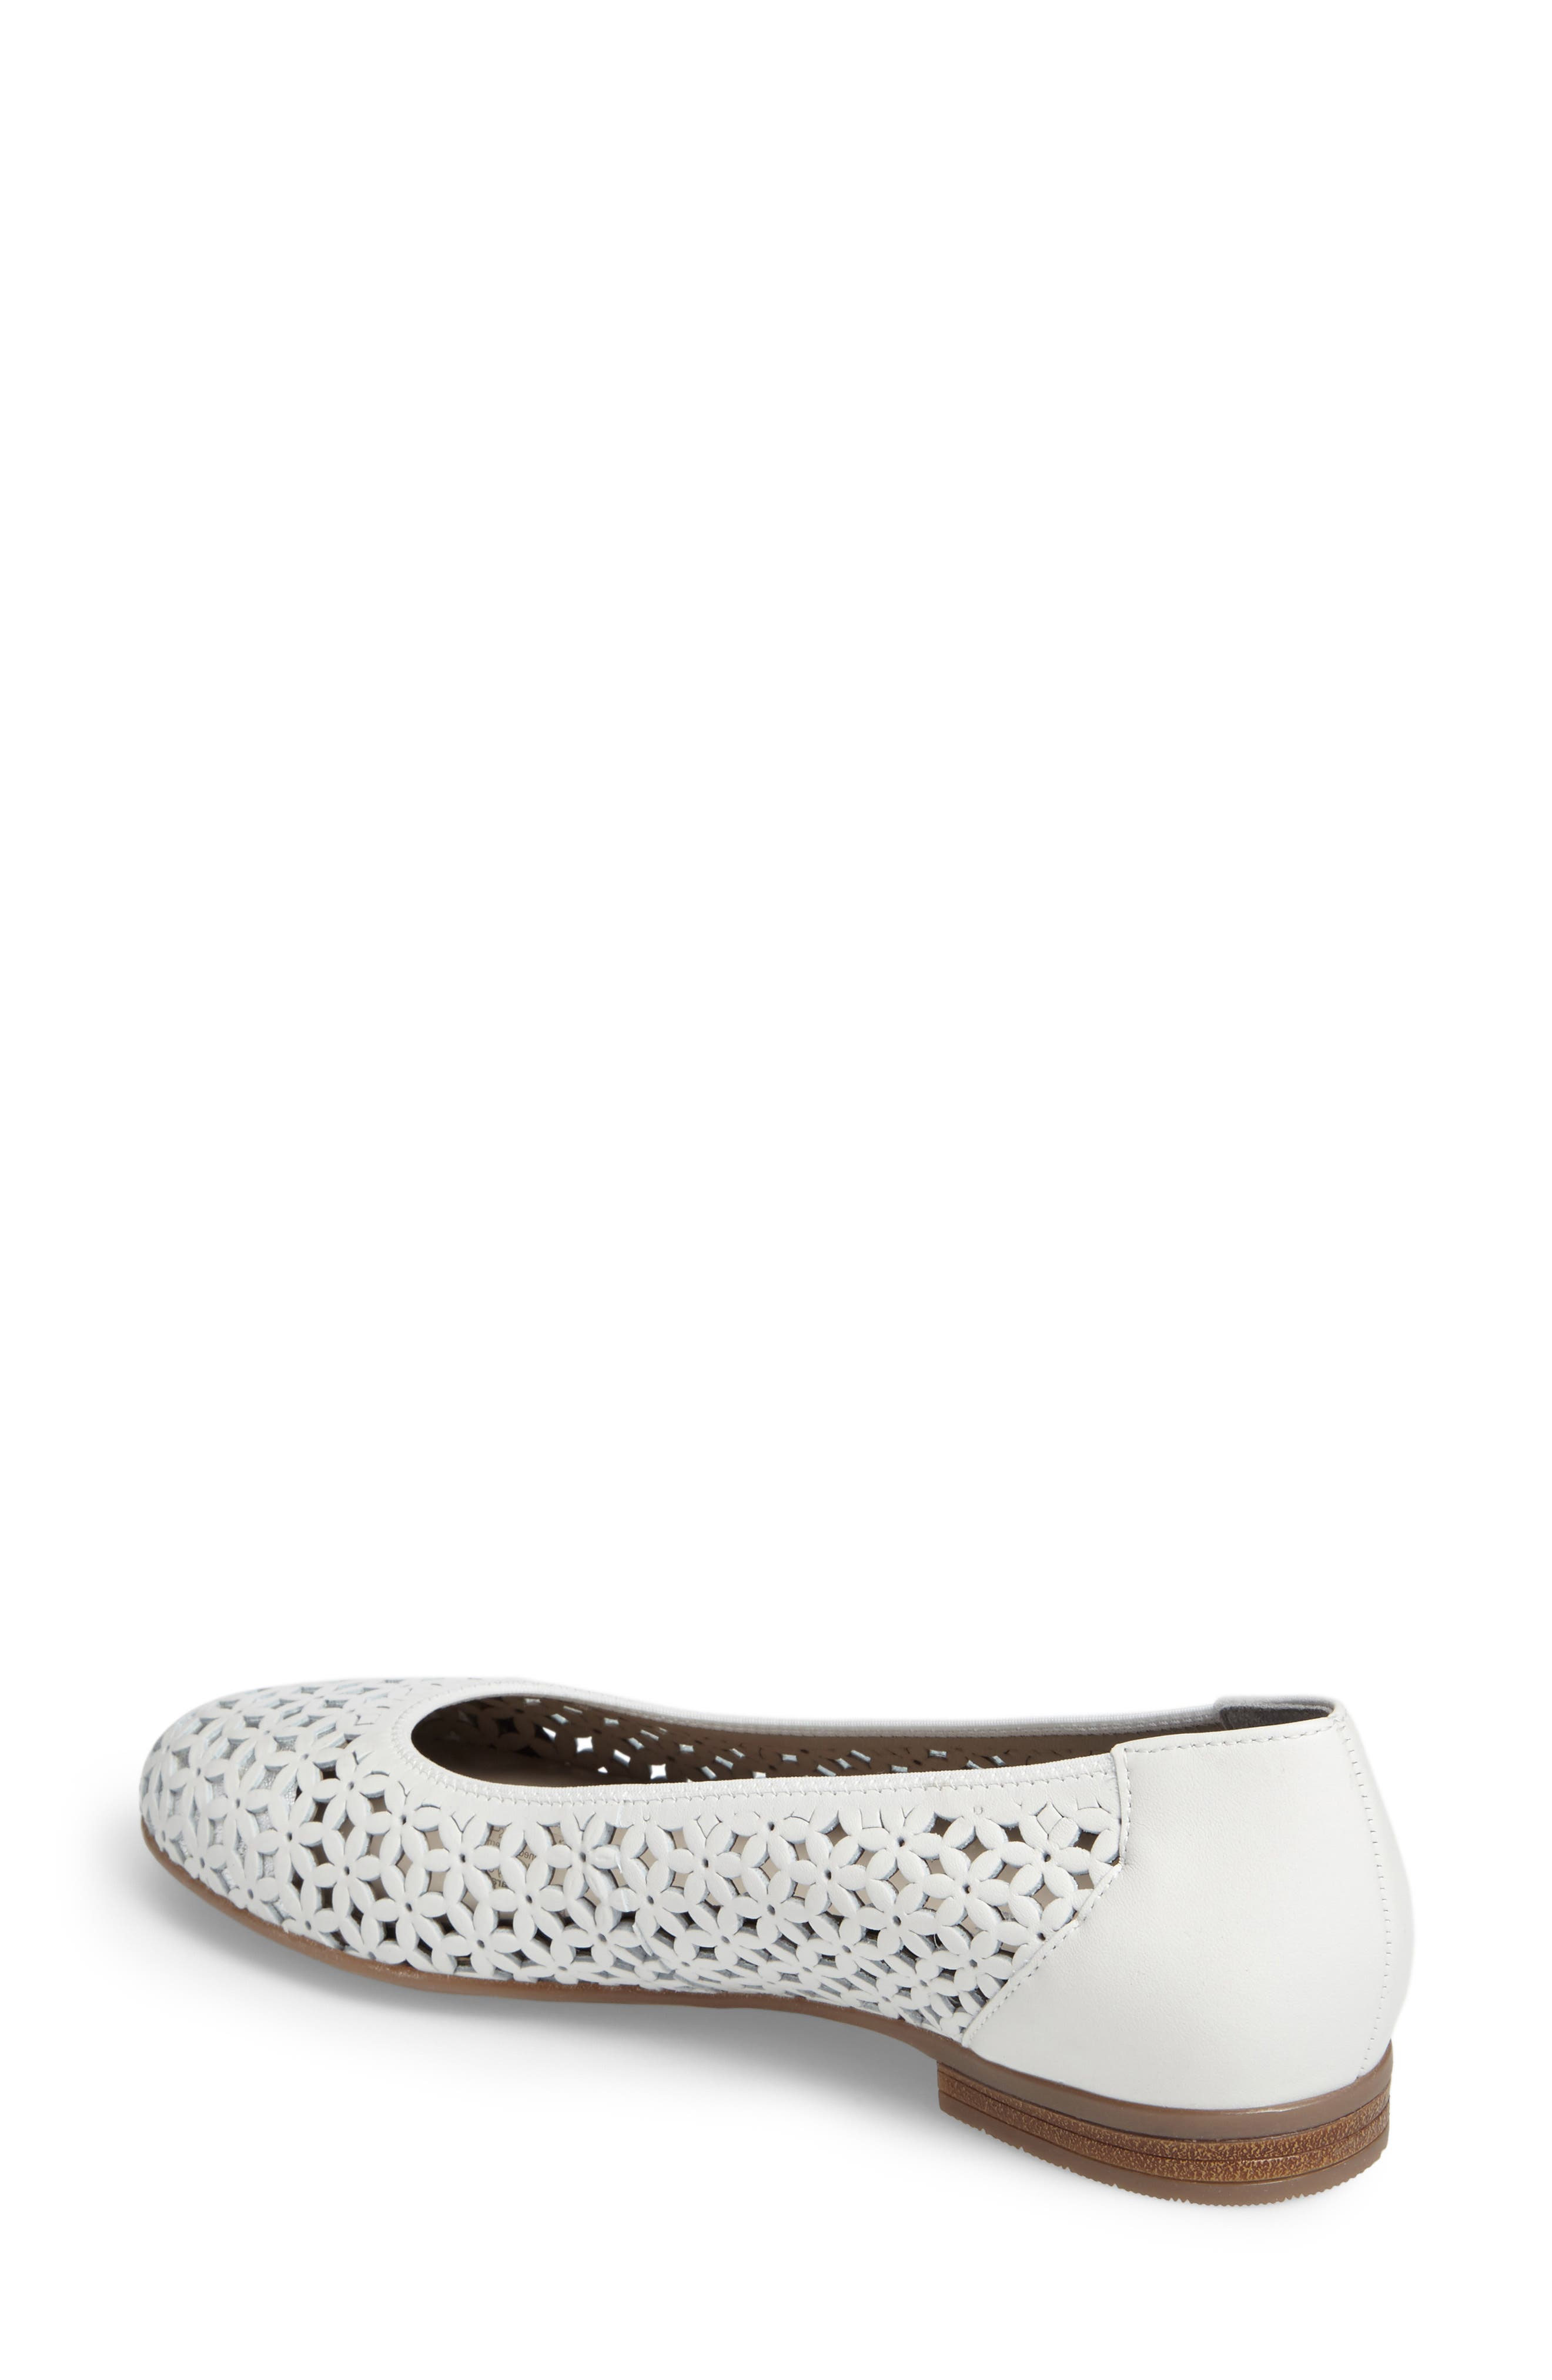 Stephanie Perforated Ballet Flat,                             Alternate thumbnail 2, color,                             101